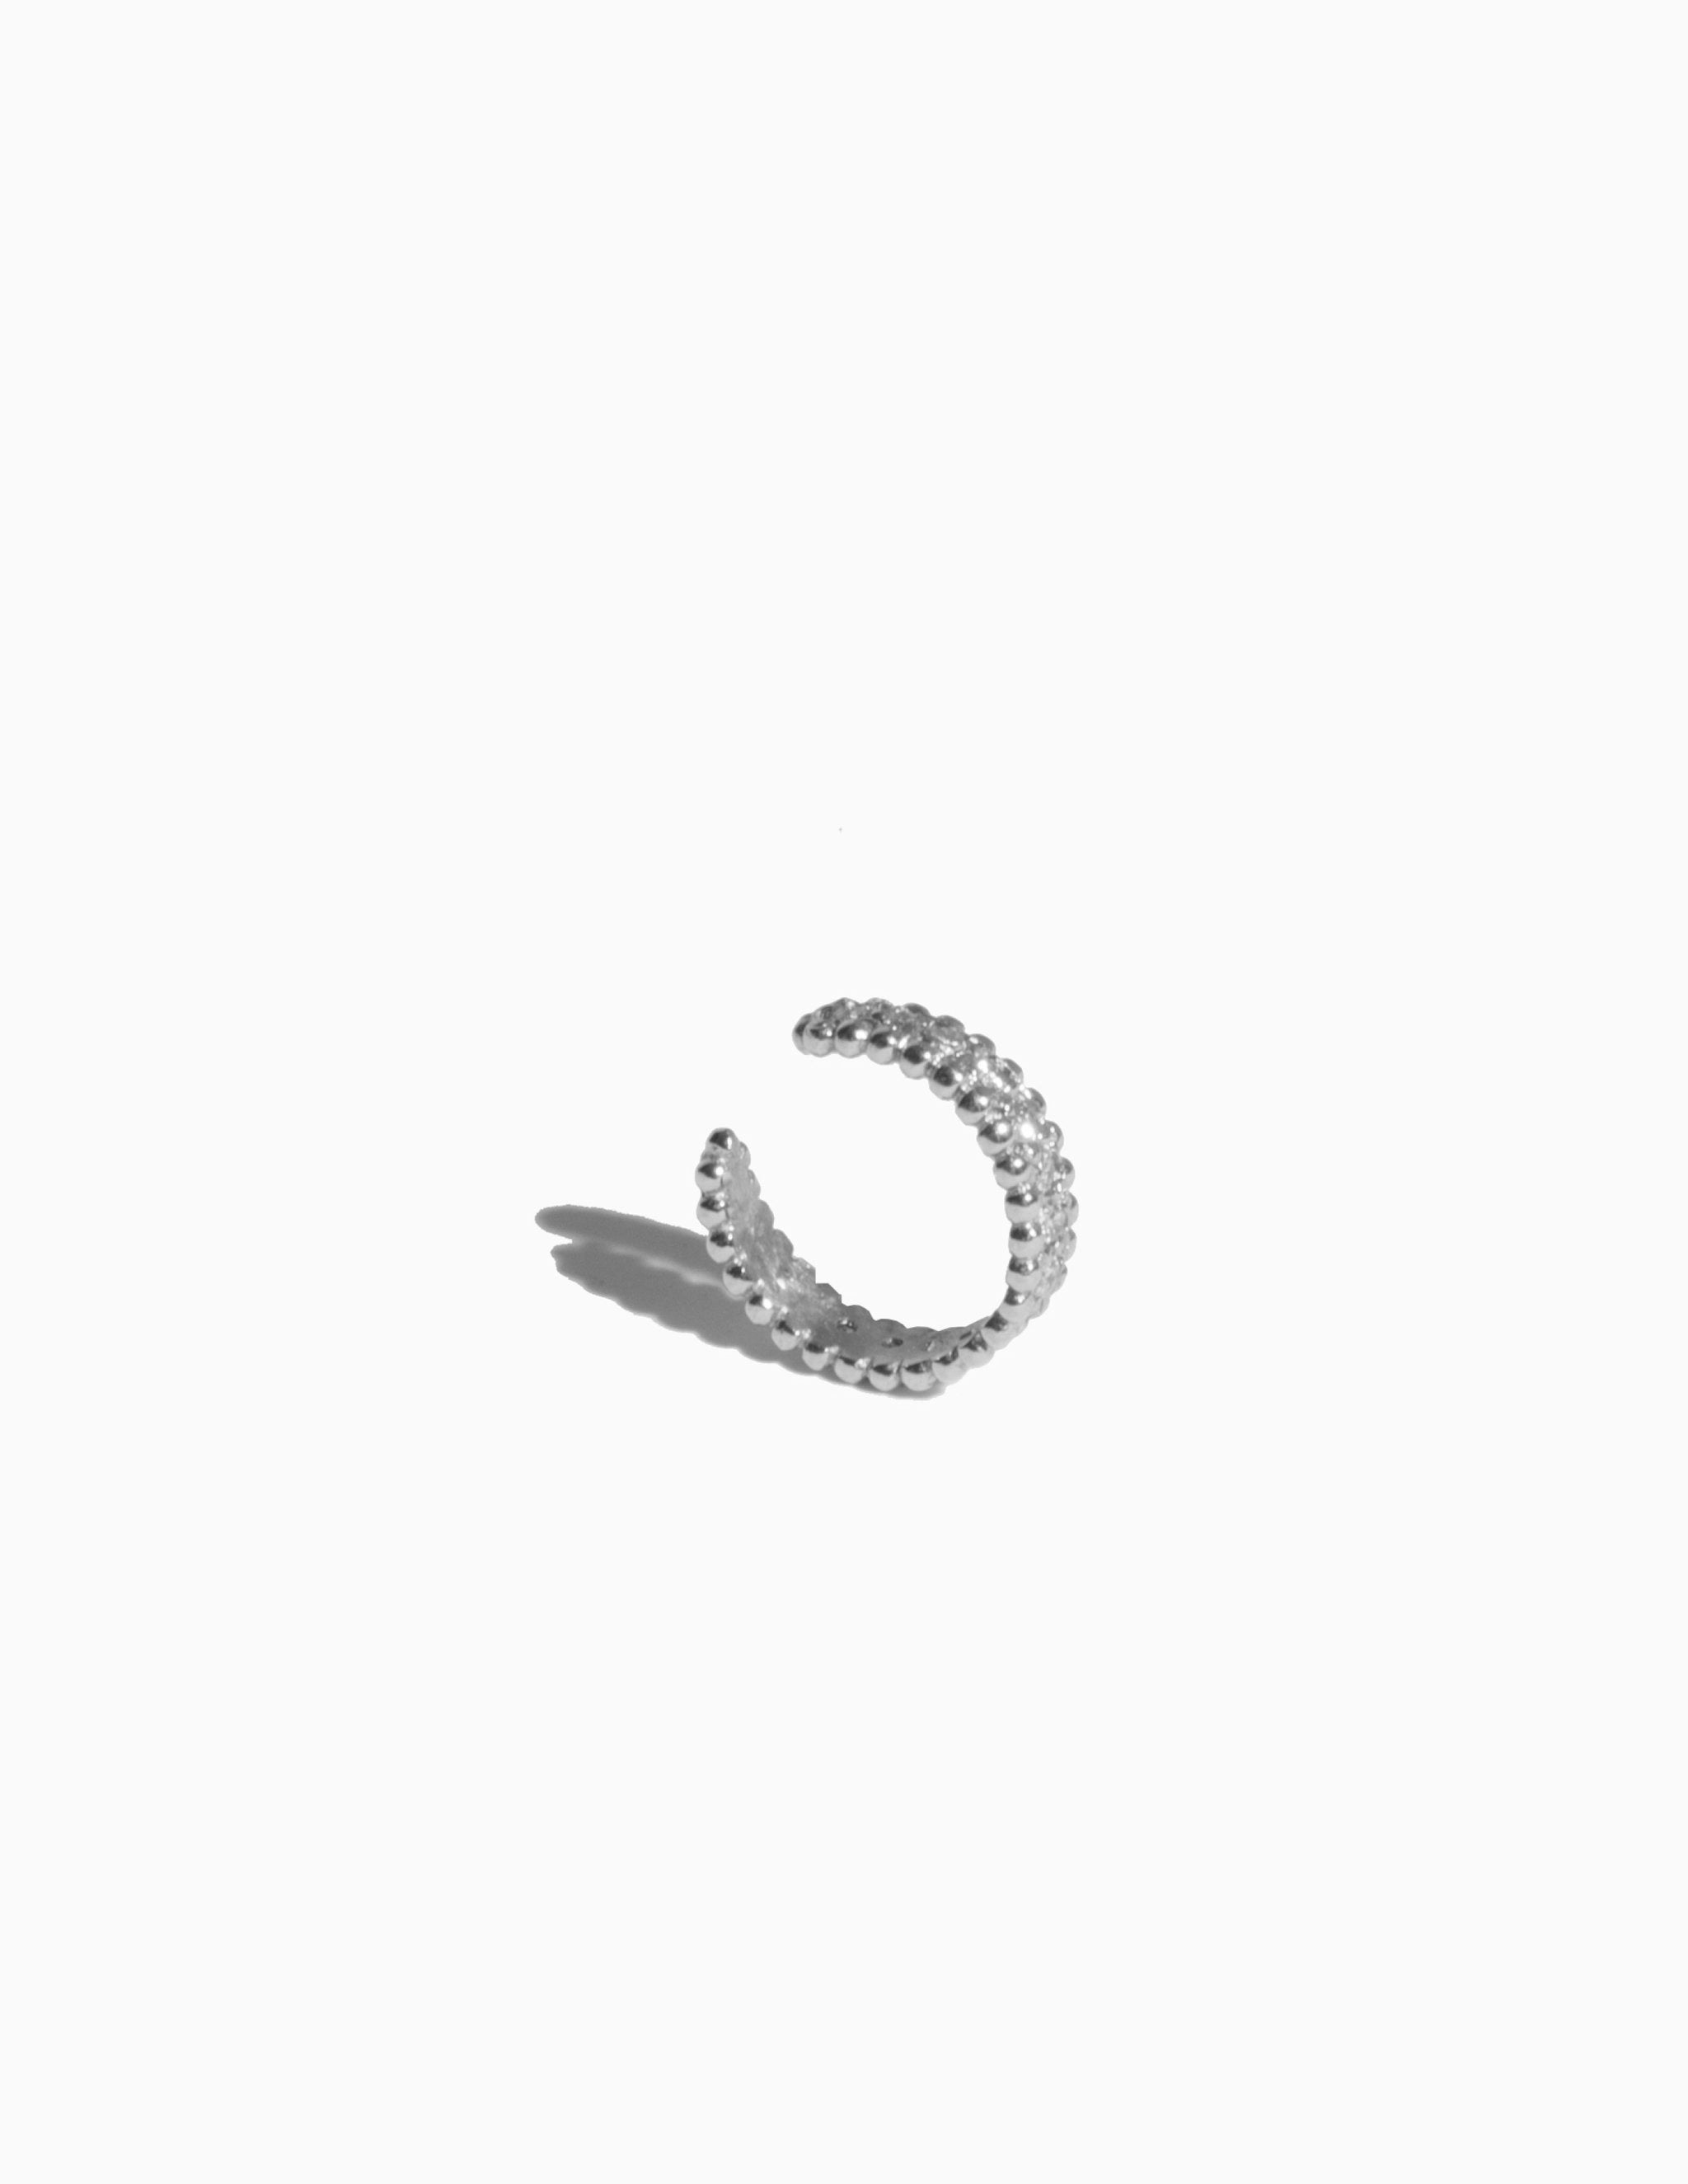 Embedded Diamond Ear Cuff